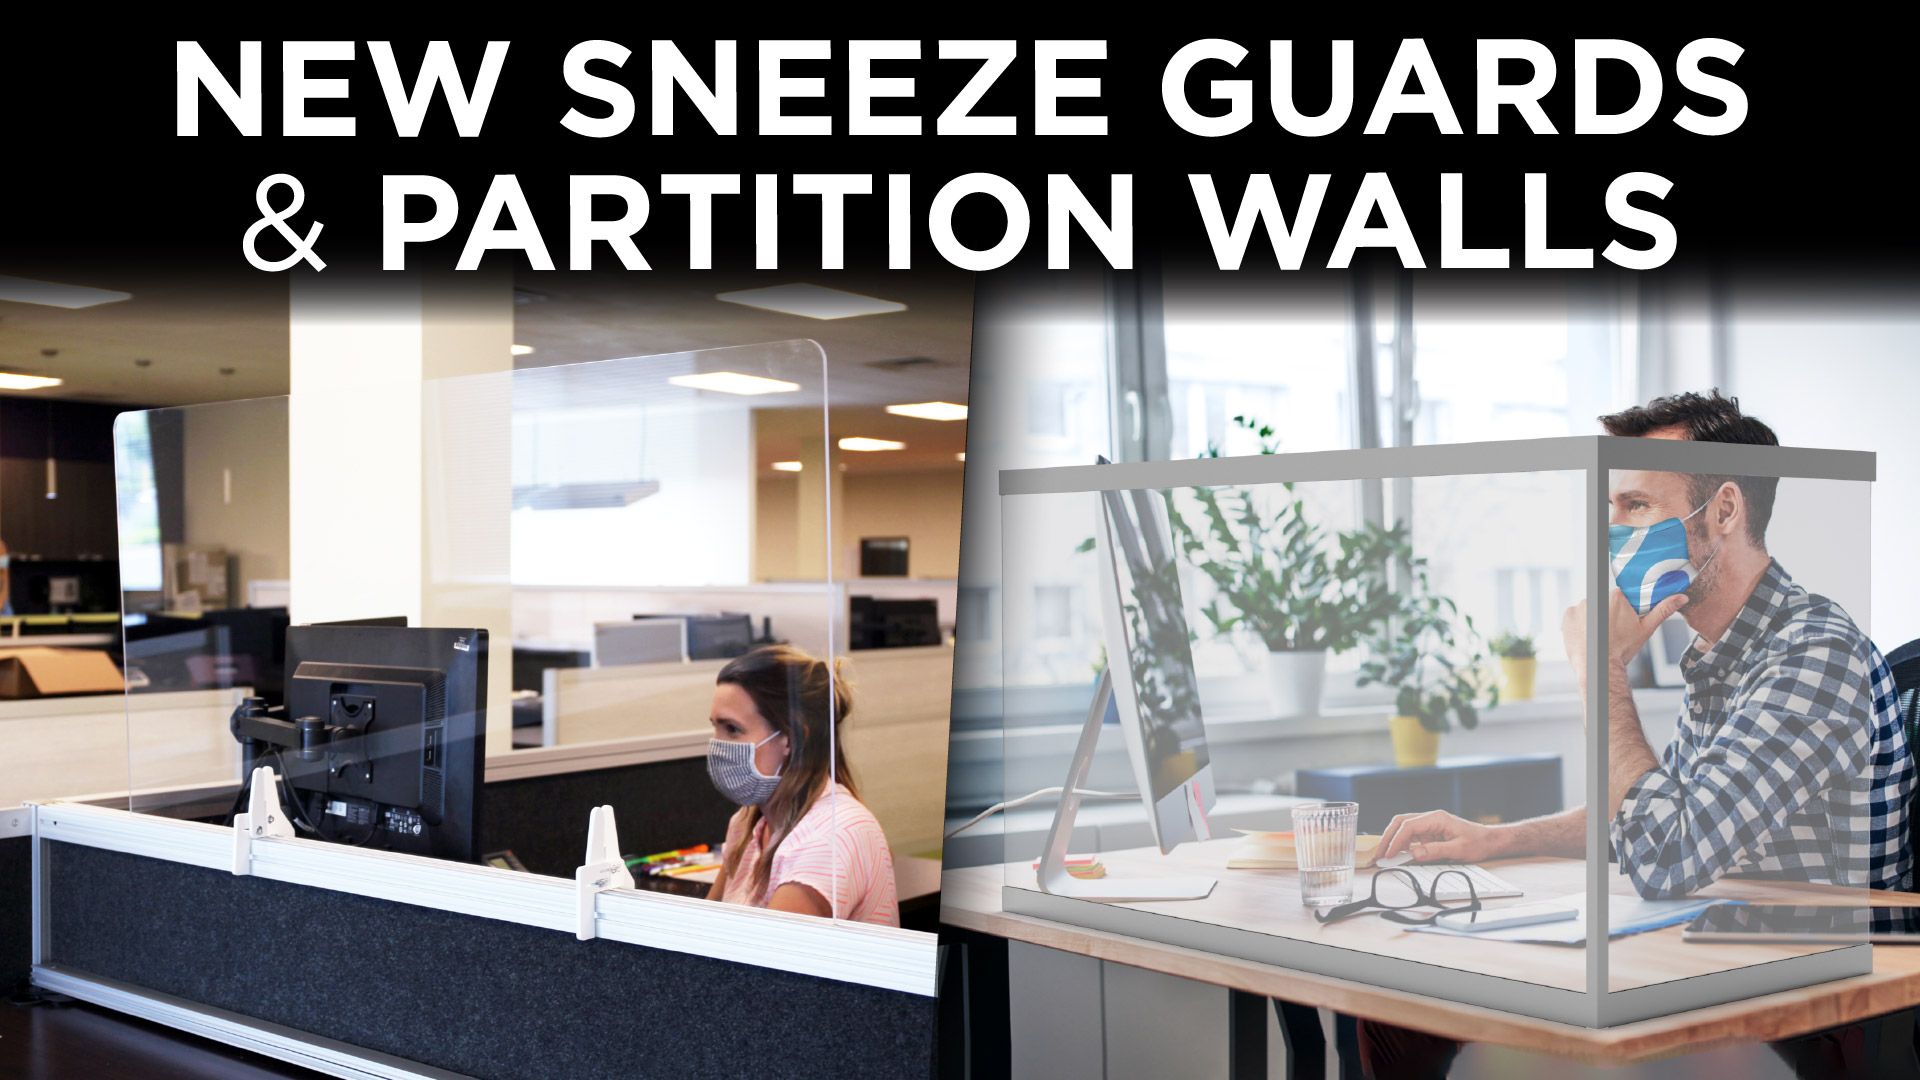 new-sneeze-guards-partition-walls.jpg